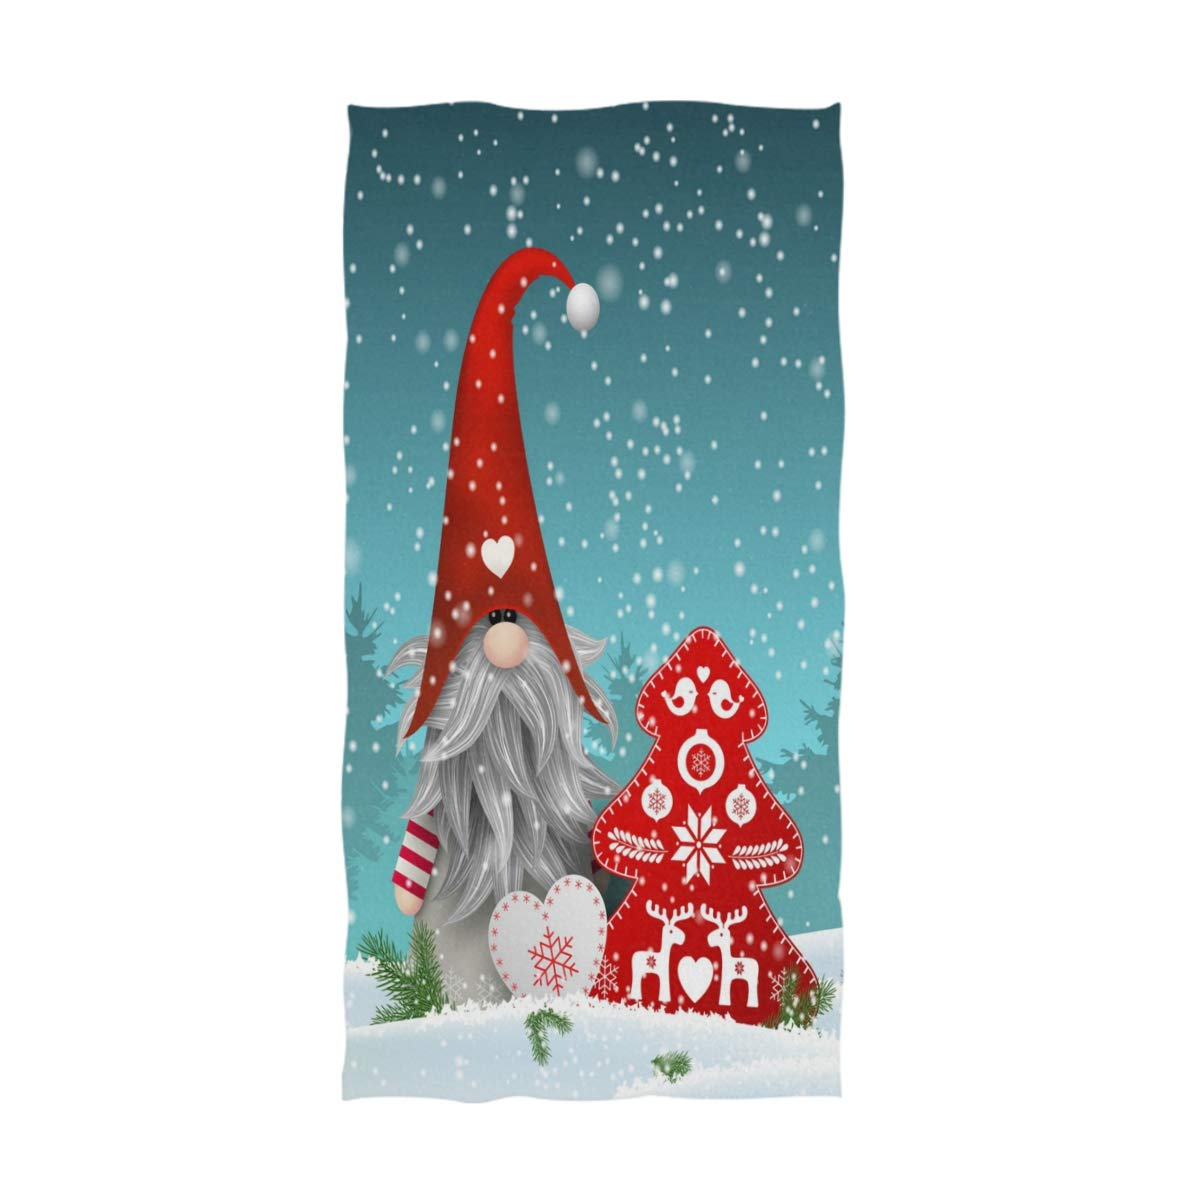 Wamika Xmas Gnome Fir Christmas Hand Towels Tomte Standing Snowy Bathroom Towel Ultra Soft Highly Absorbent Bath Towels for Face,Gym,Spa,16 X 30 Inch